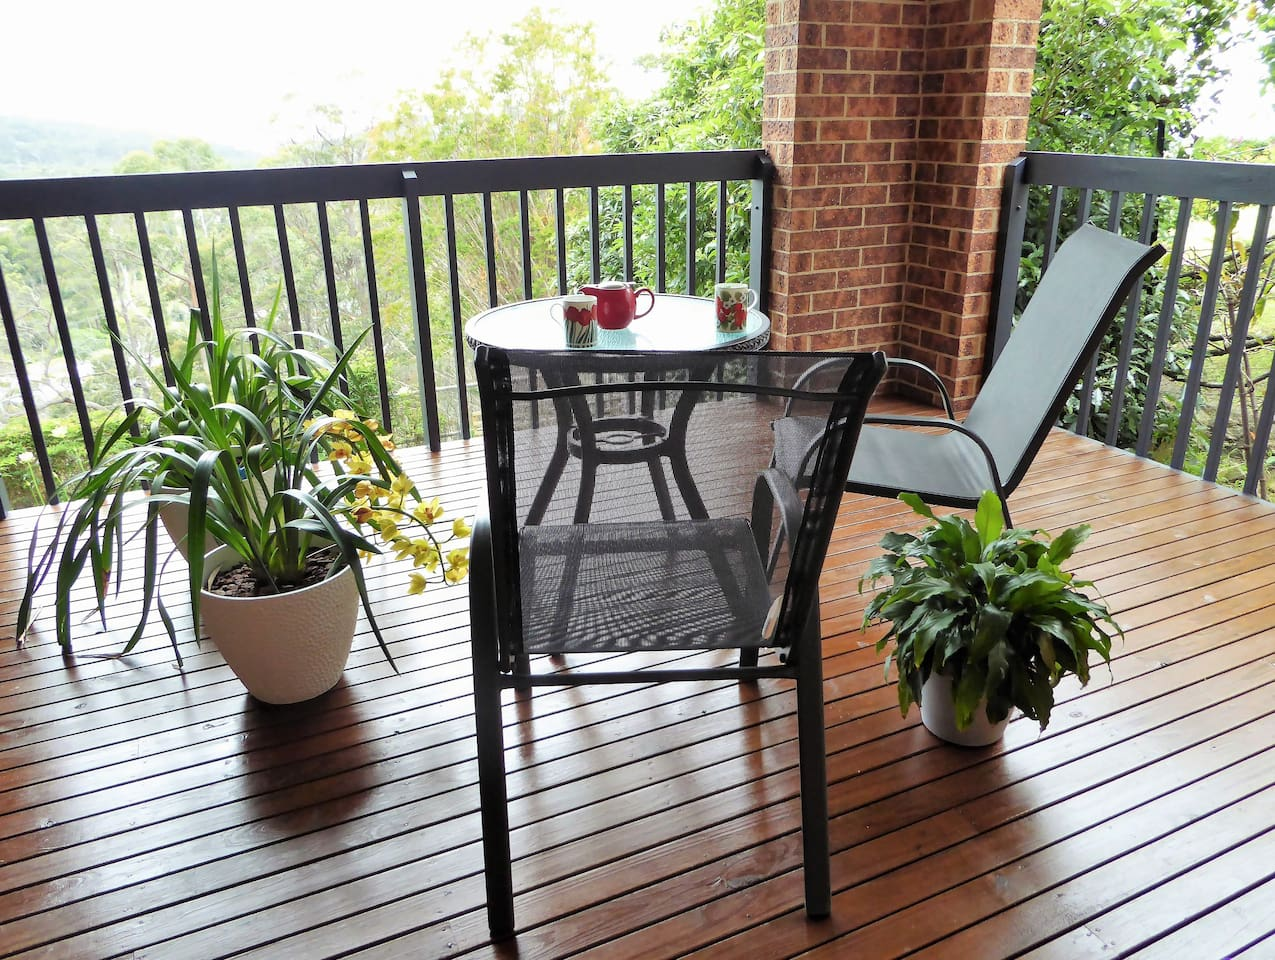 Your own private deck to enjoy!